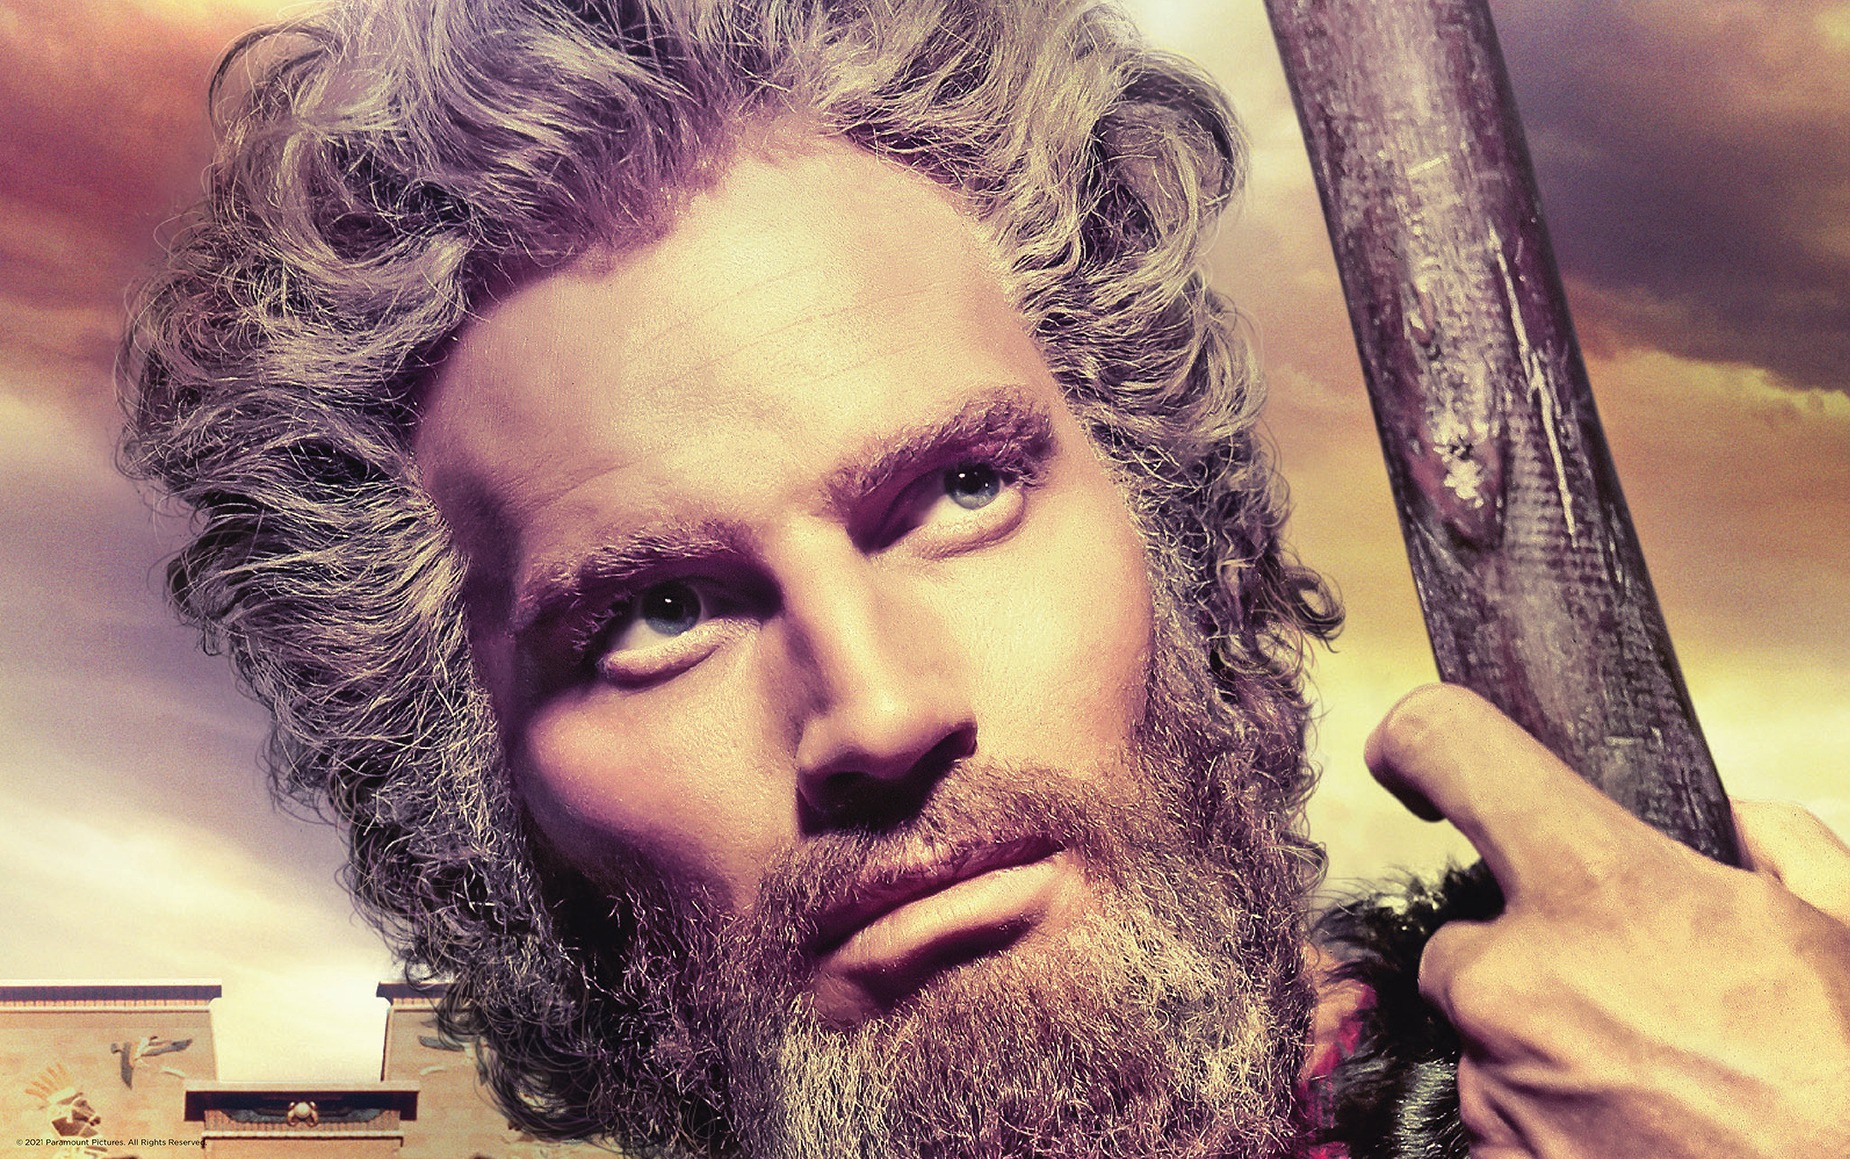 'The Ten Commandments' returns to theaters for 65th anniversary